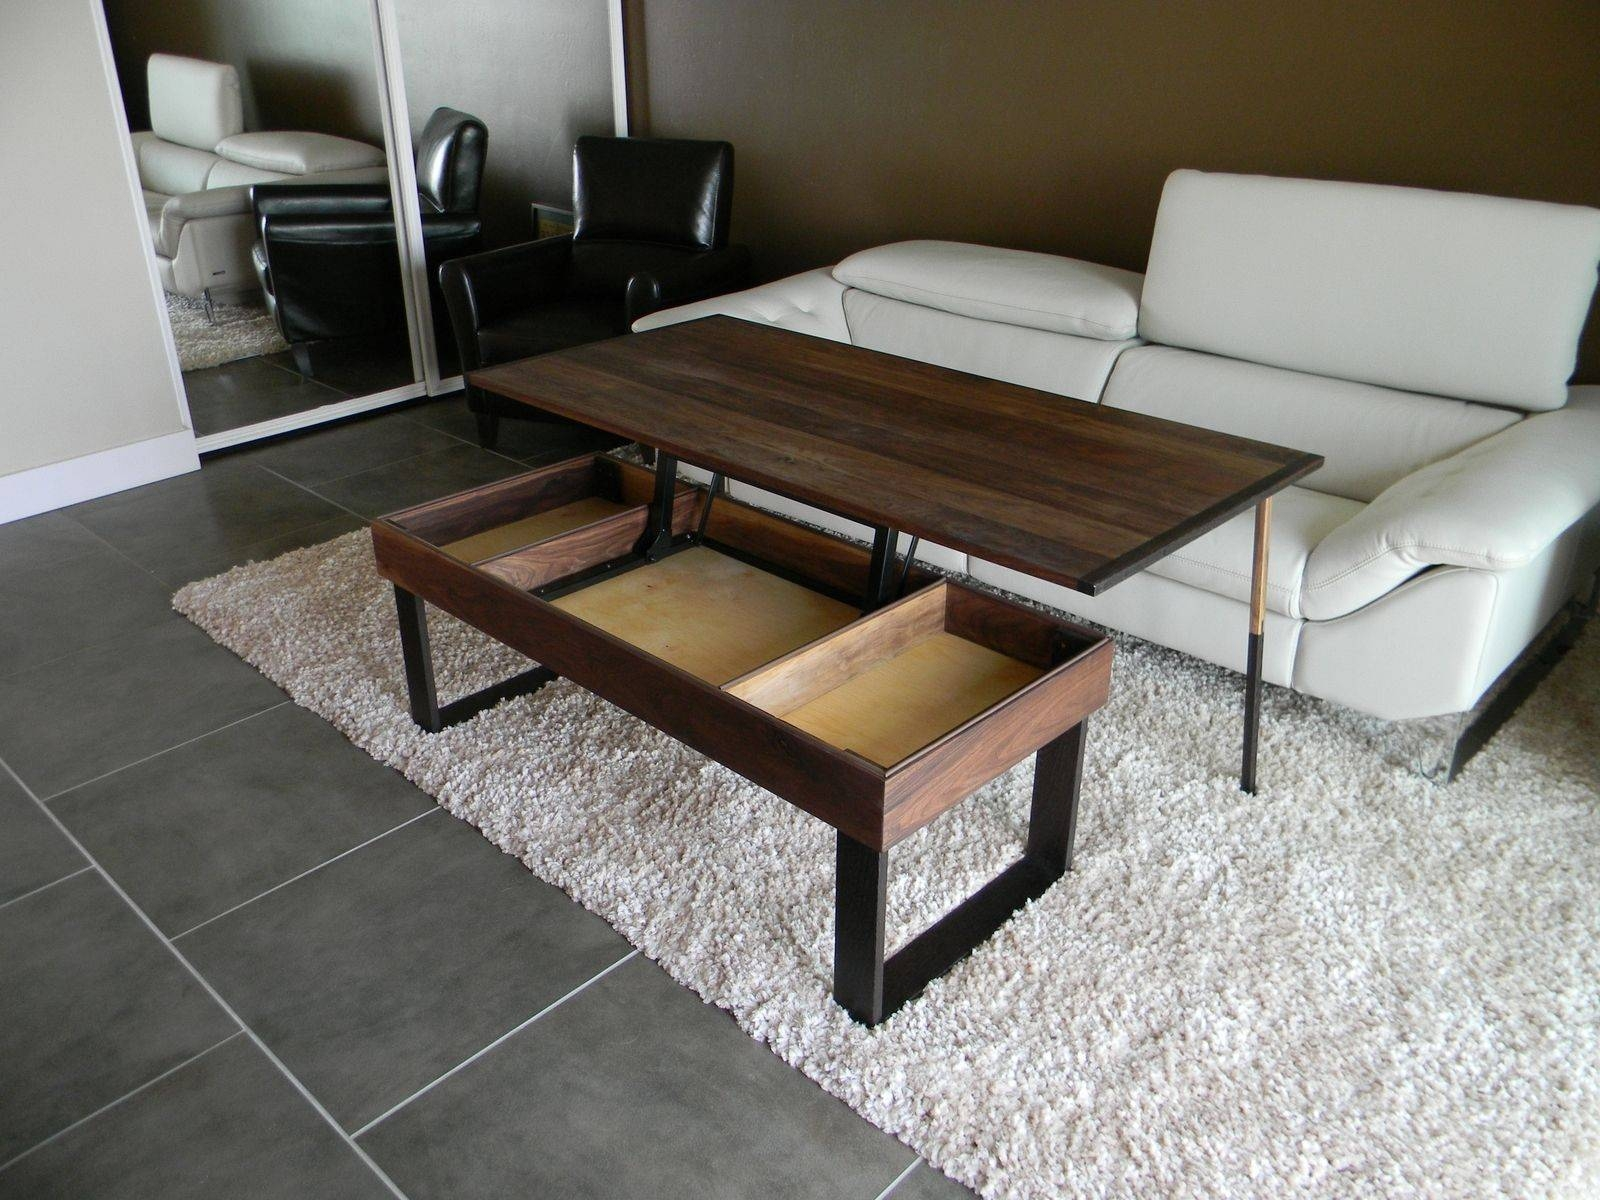 Coffee Table With Lift Top And Storage | Coffee Tables Decoration inside Coffee Tables Top Lifts Up (Image 5 of 30)